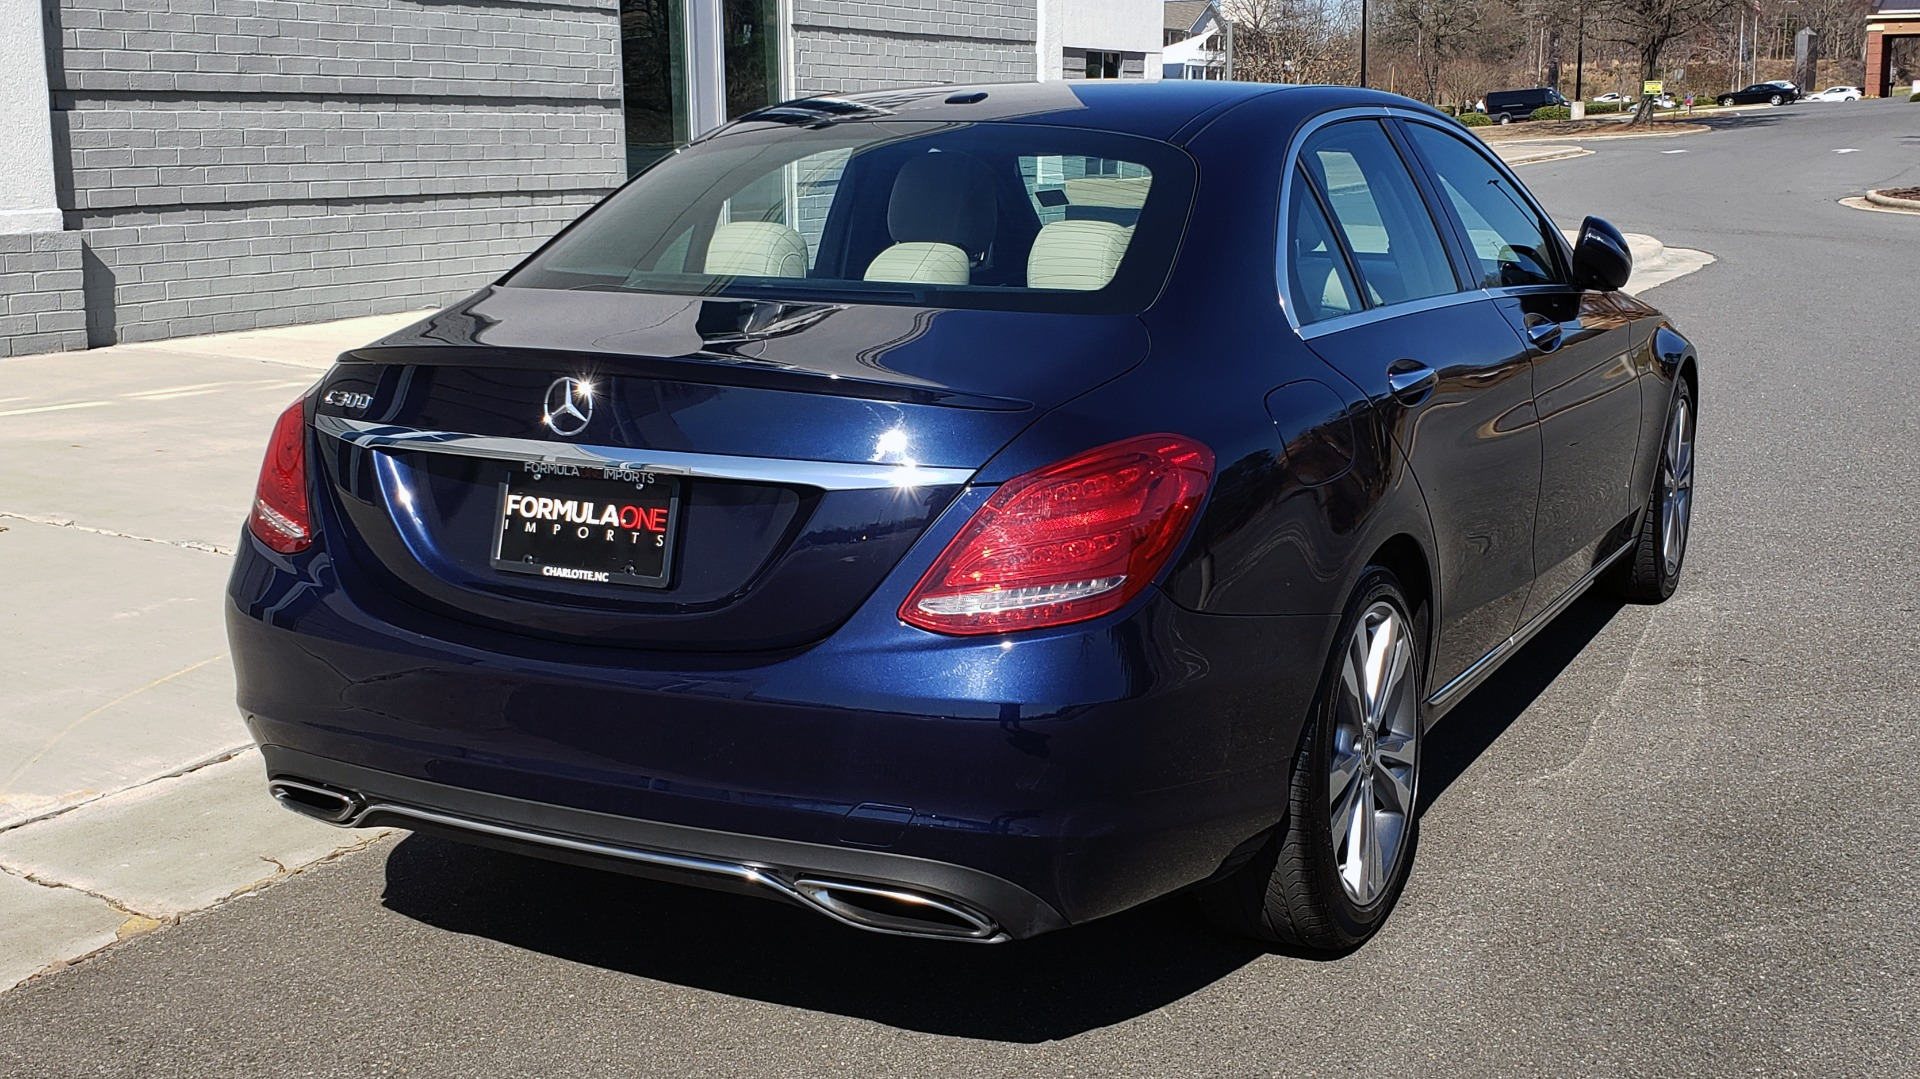 Used 2018 Mercedes-Benz C-CLASS C 300 PREMIUM / SUNROOF / BURMESTER / BSM / REARVIEW for sale $23,995 at Formula Imports in Charlotte NC 28227 7